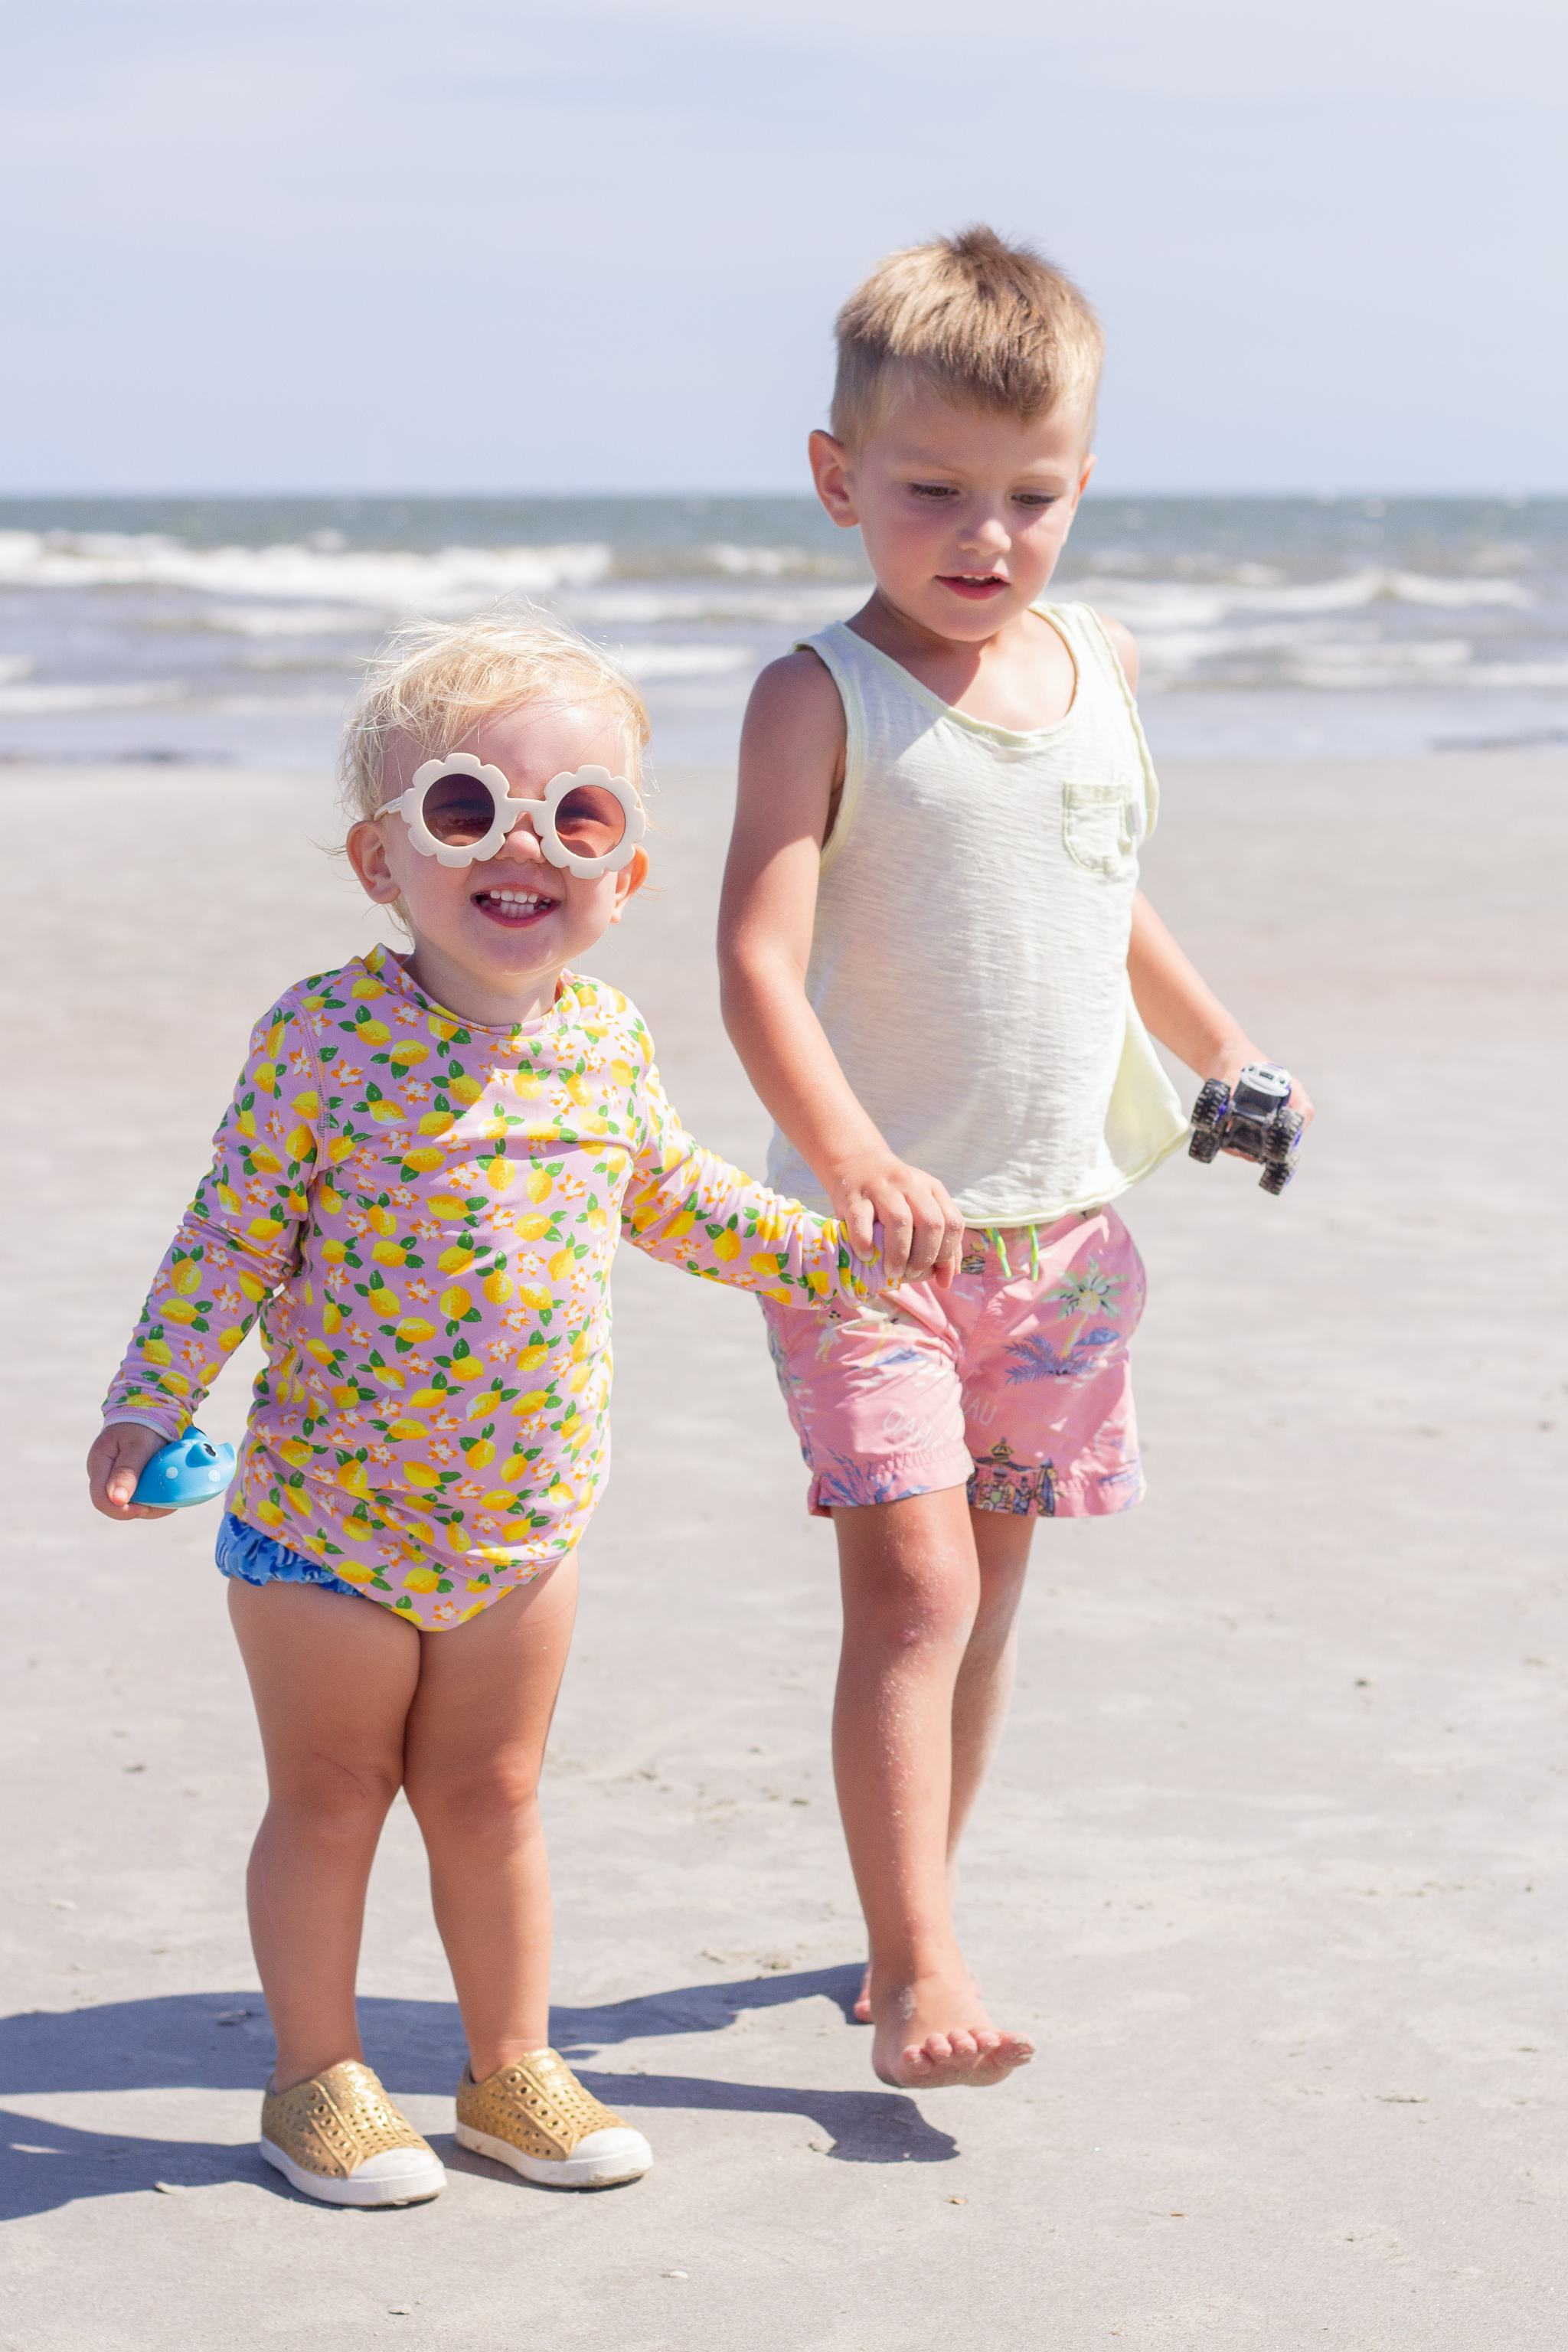 fripp island - south carolina - lowcountry - family beach vacation - jcrew factory lemon swimsuit - daisy sunglasses - flower sunglasses - sibling beach photo - toddler girl style